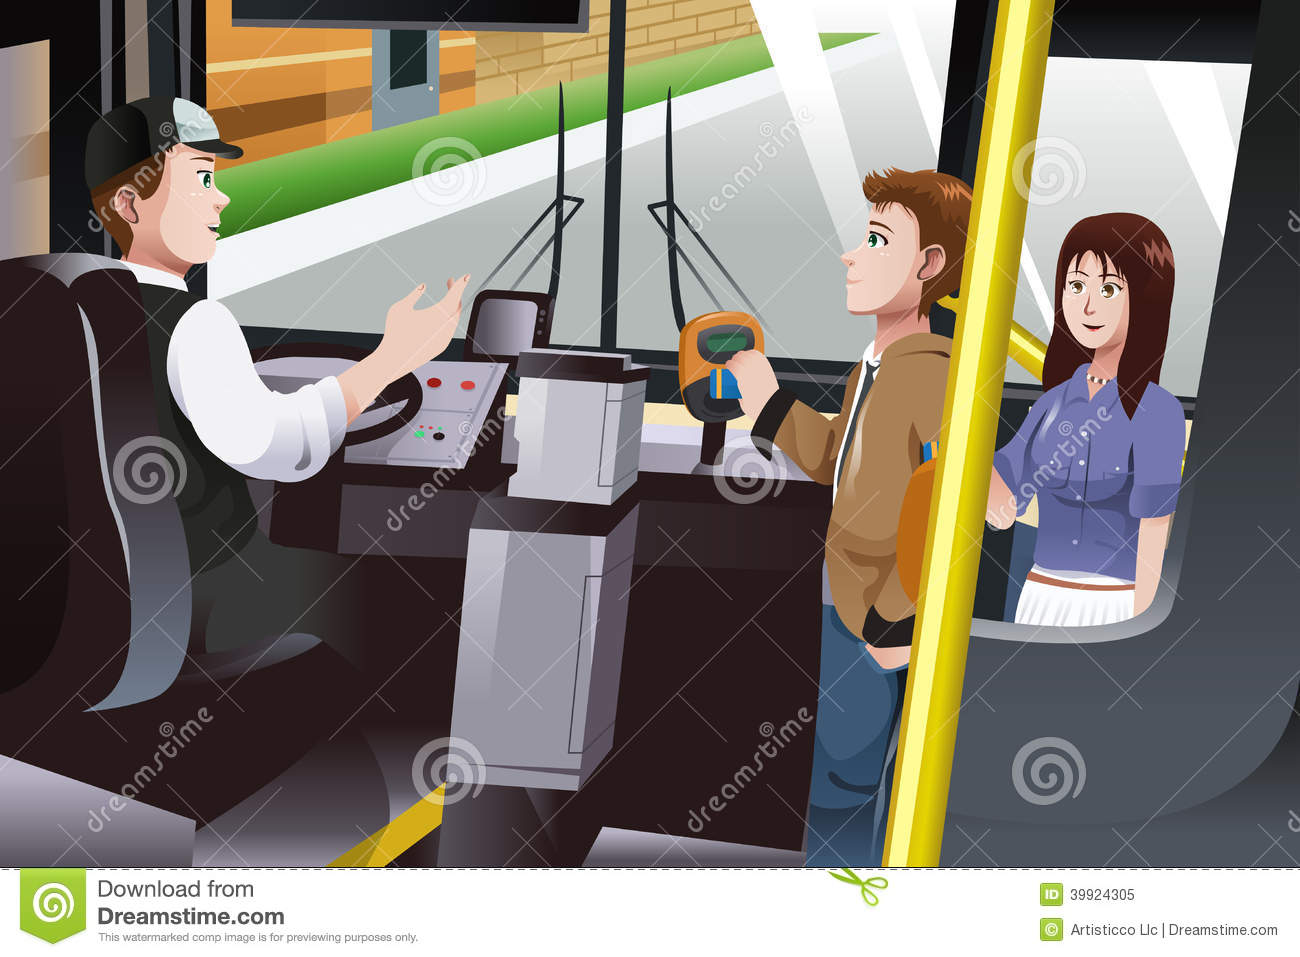 People Paying For Bus Fare Stock Vector - Image: 39924305